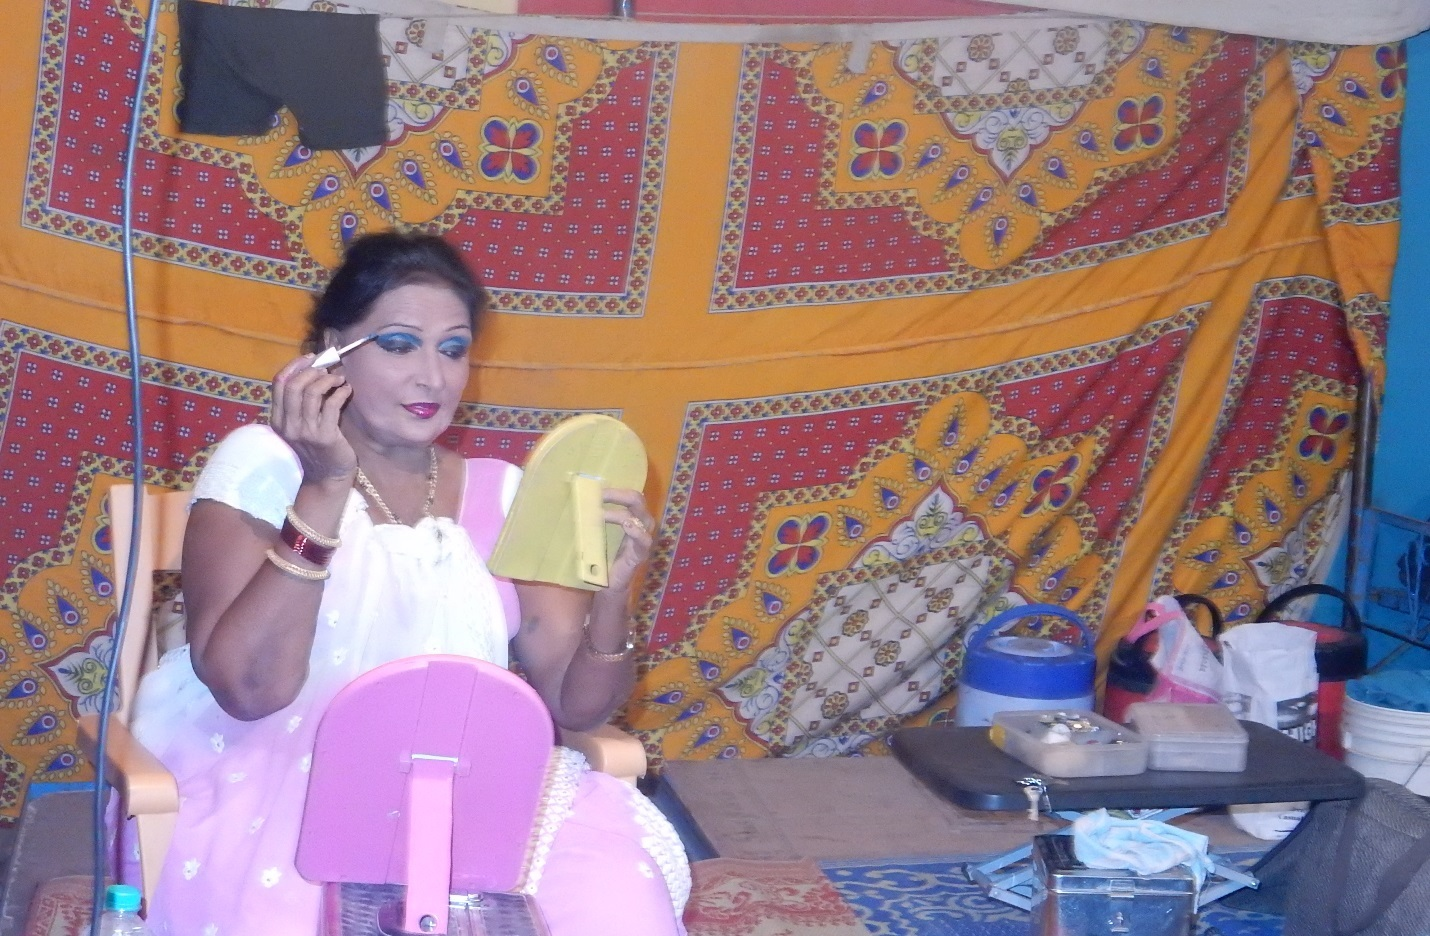 Mangalatai wearing make-up in her tent. She continues her promise to perform in tamasha. Credit: Shailaja Paik